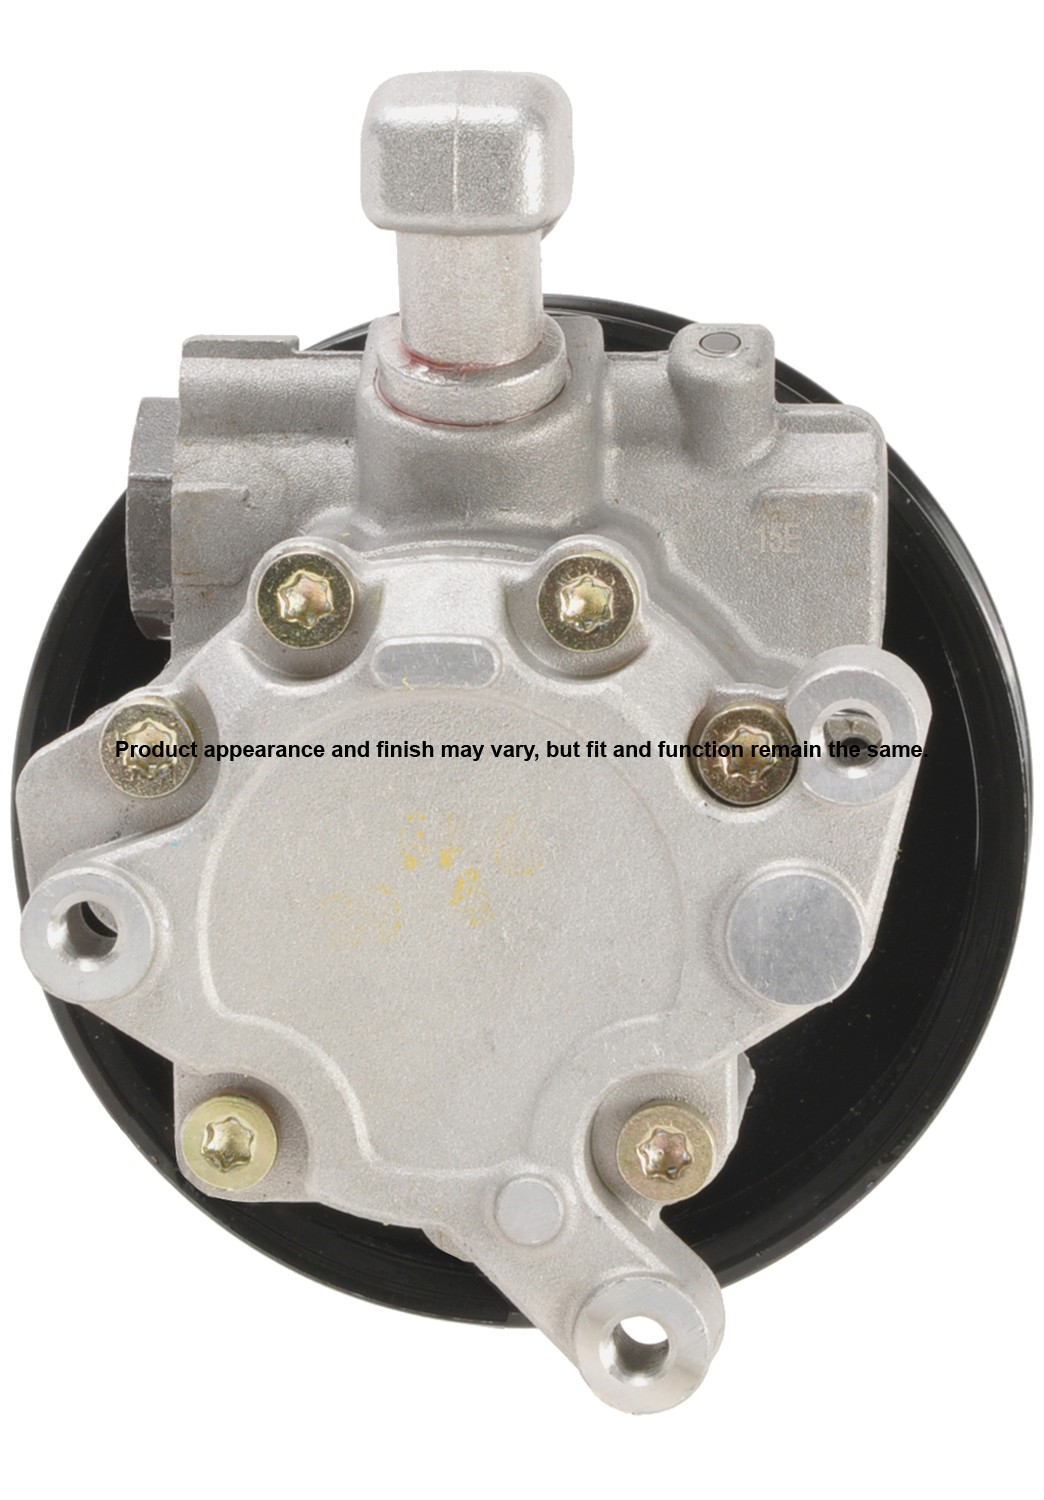 2001 Mercedes Benz Ml320 Power Steering Pump 01 Fuel Filter Location A1 96 5294